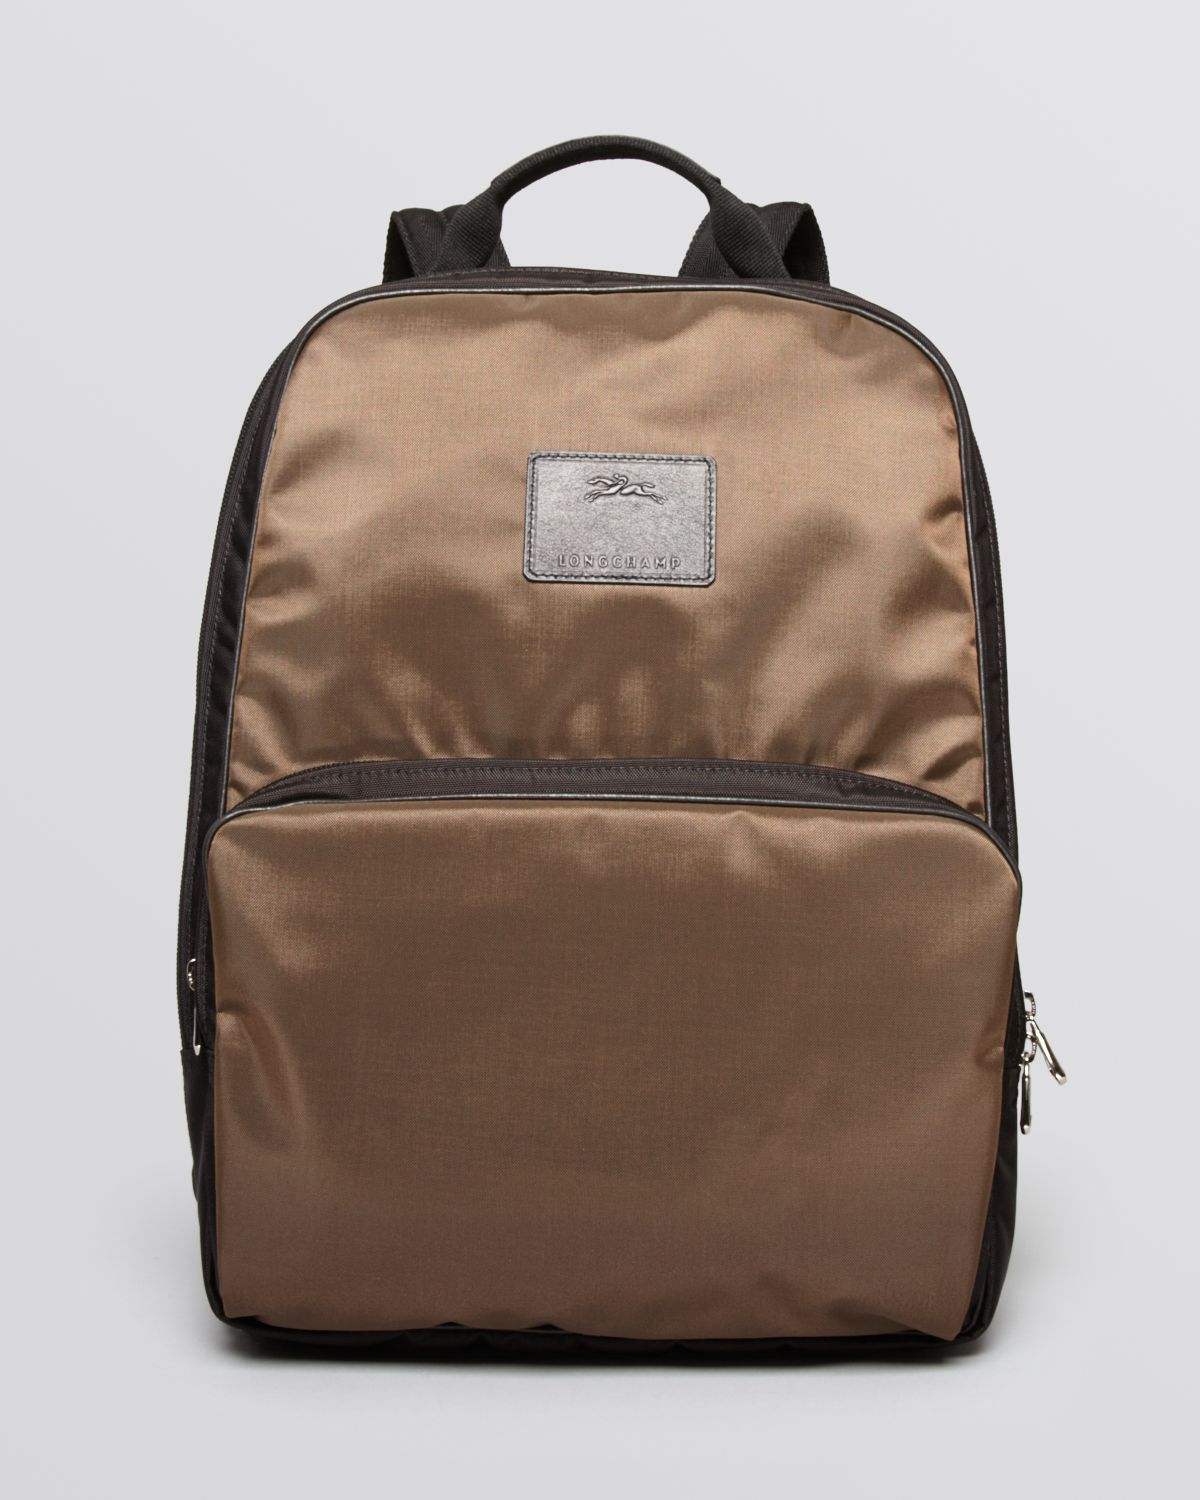 b7631a9572b6 Lyst - Longchamp Baxinyl Backpack in Brown for Men